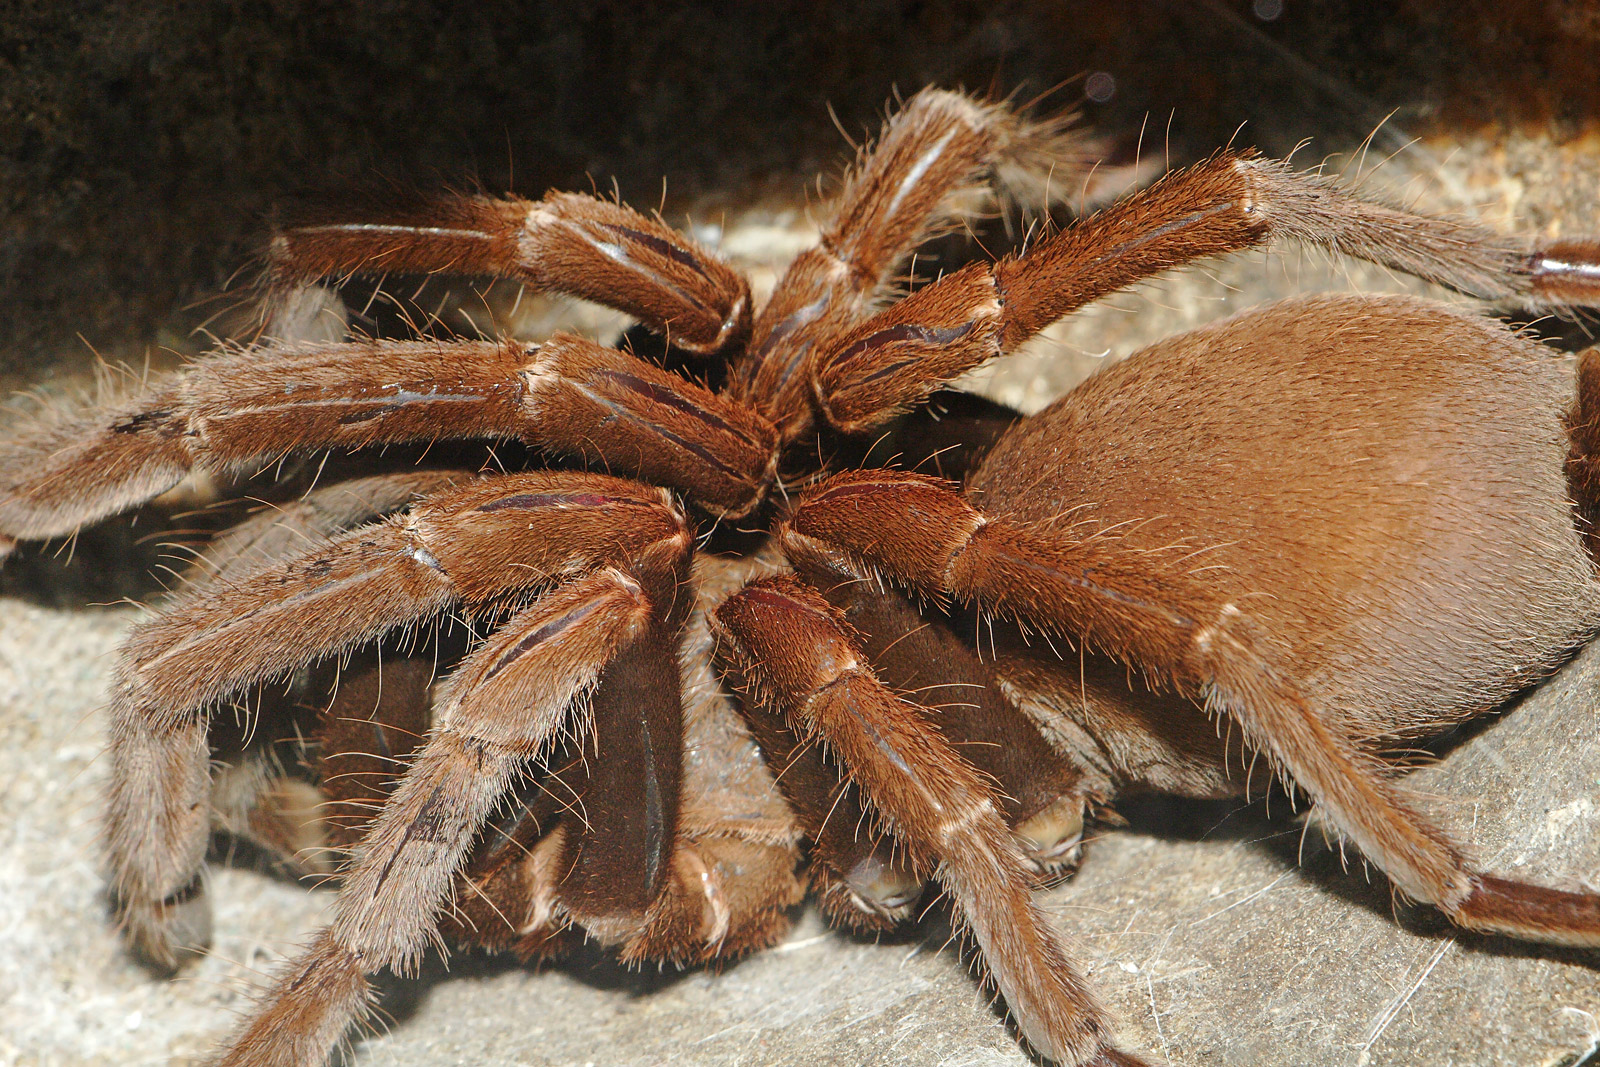 Tarantula - 03 photo